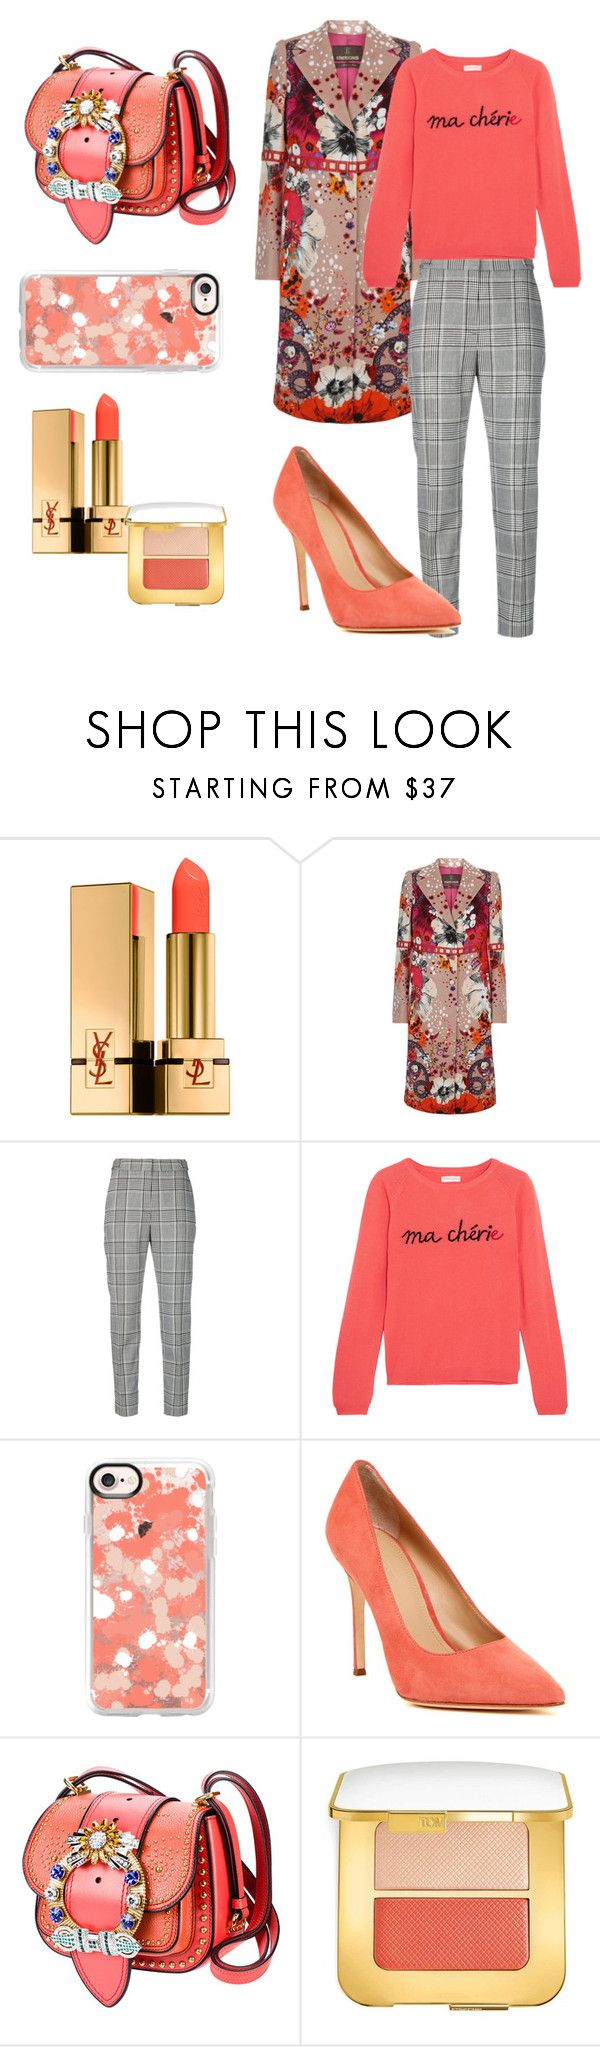 """""""Coral sweater"""" by chanelkrazy ❤ liked on Polyvore featuring Yves Saint Laurent, Roberto Cavalli, Alexander Wang, Chinti and Parker, Casetify, Pour La Victoire, Miu Miu and Tom Ford"""